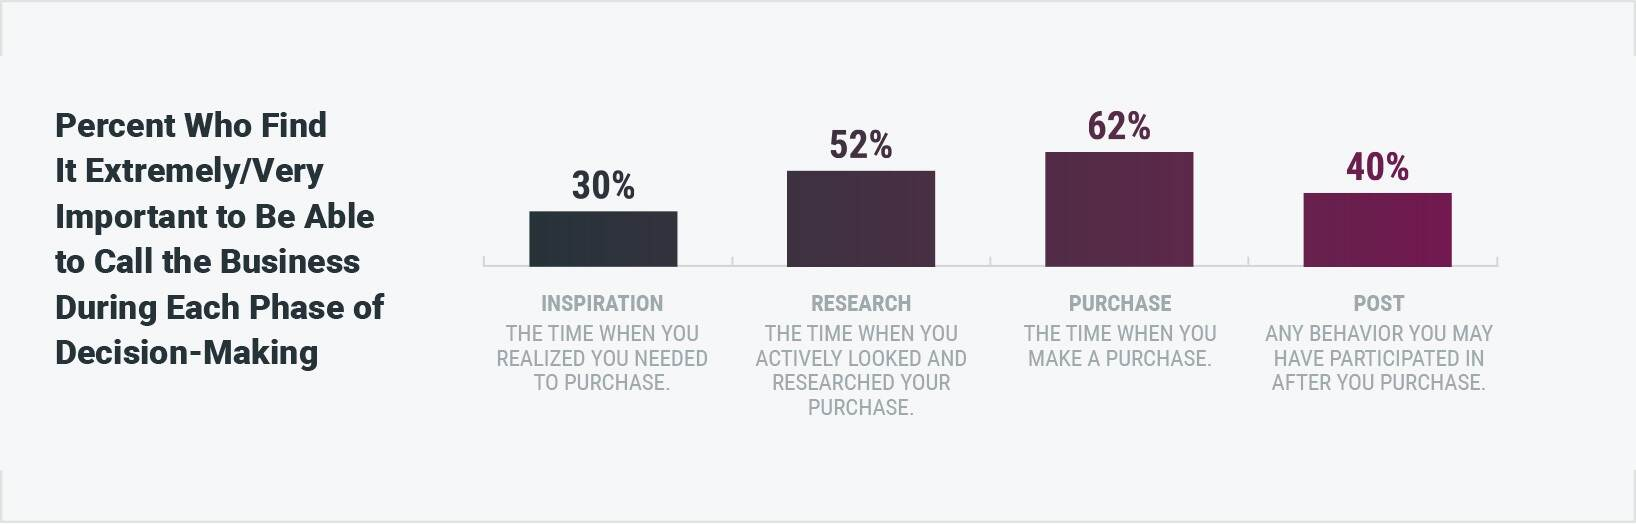 B2B eCommerce buyers find it important to call during the purchasing process